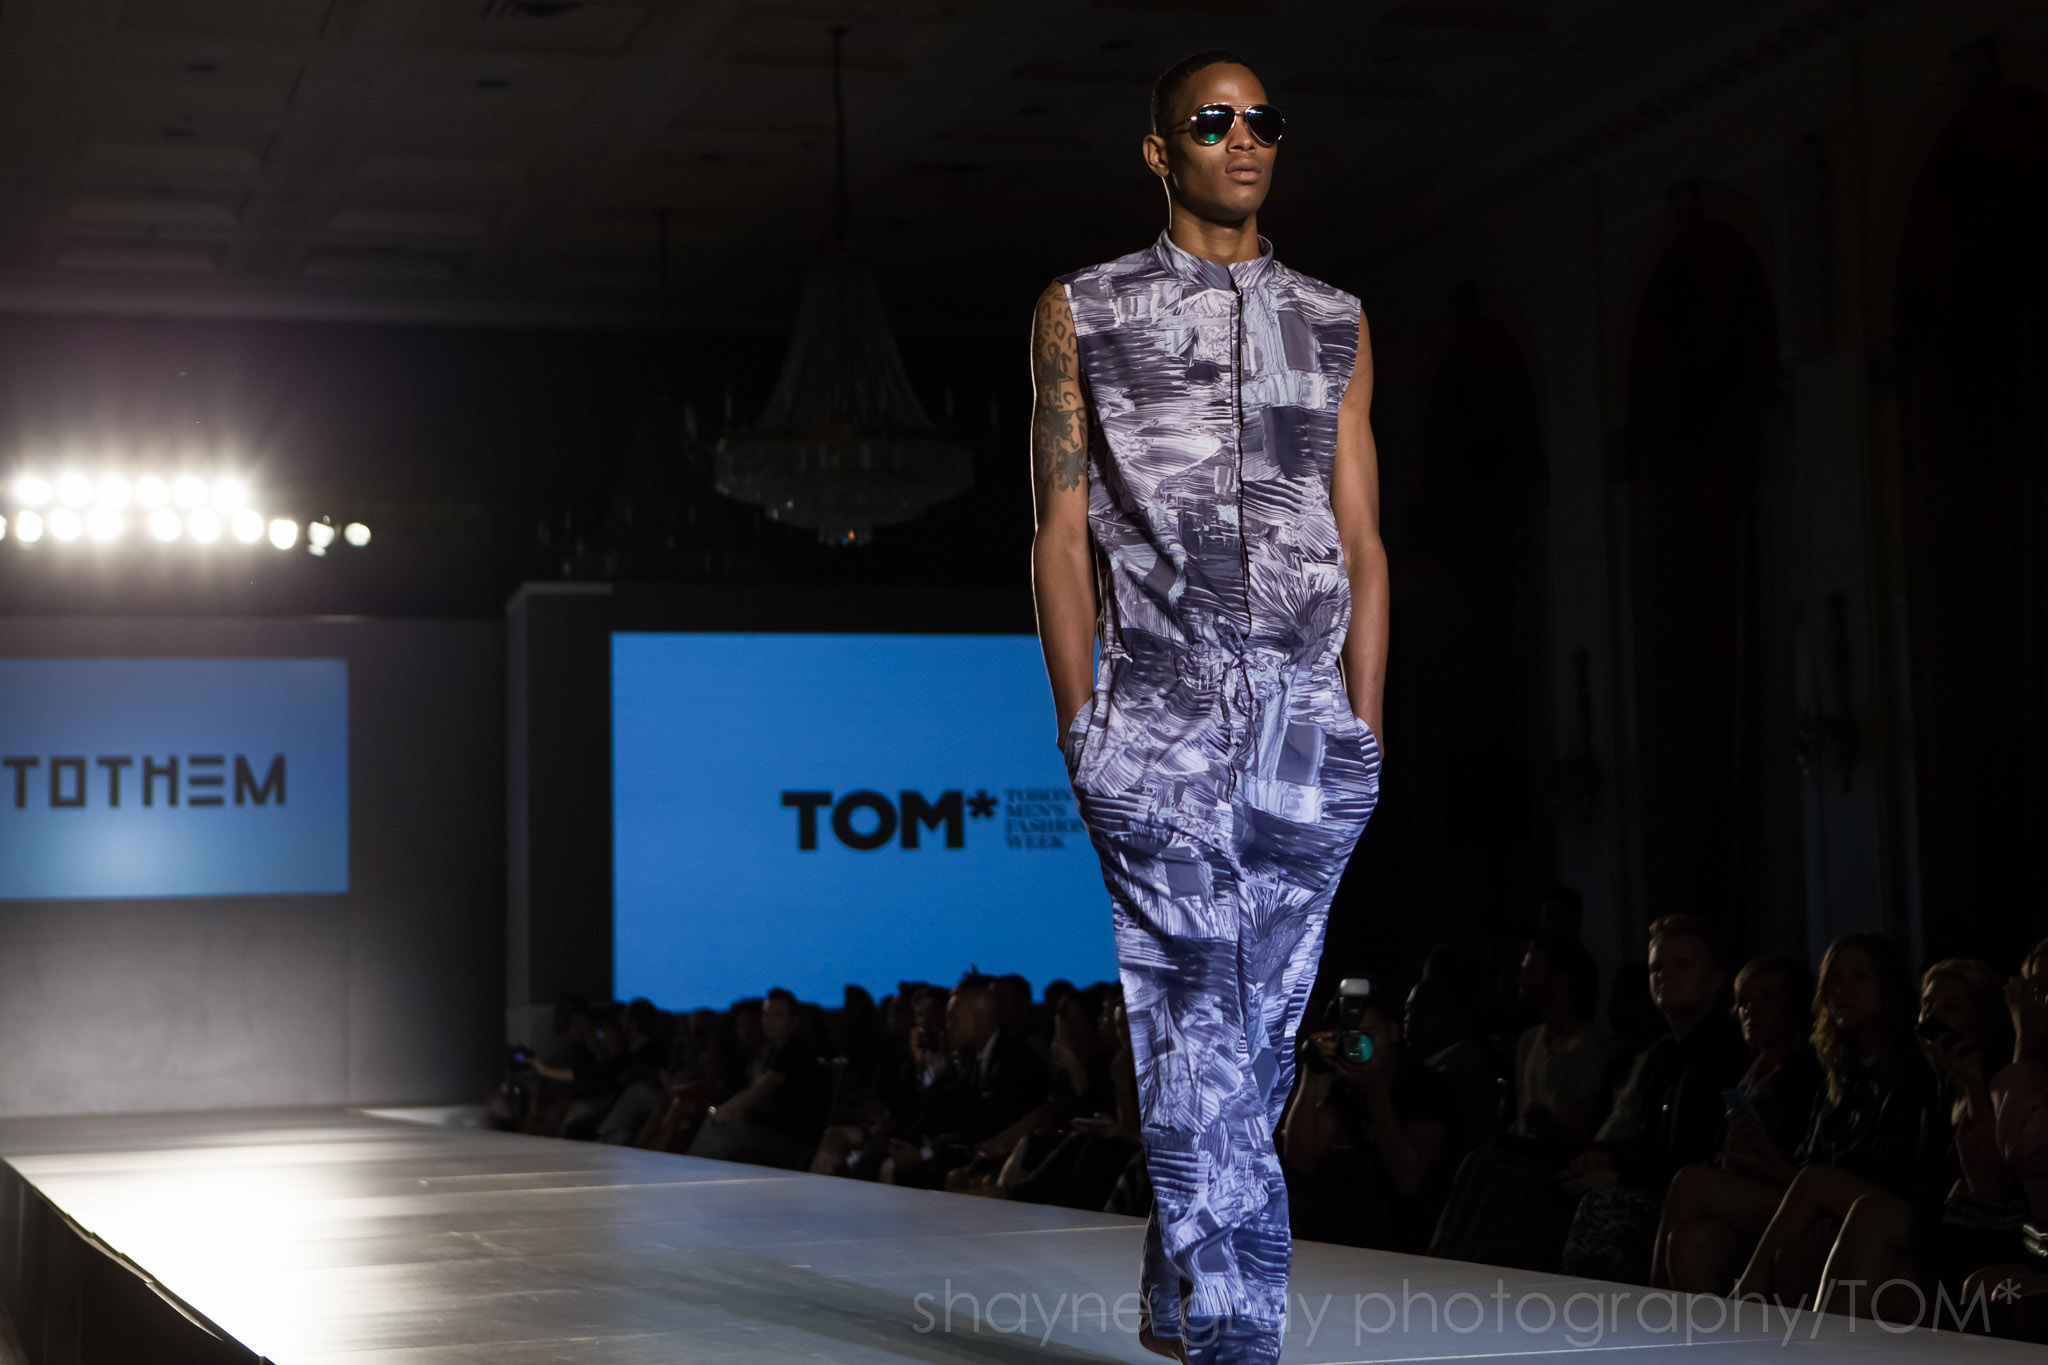 Shayne-Gray-Toronto-men's-fashion_week-TOM-tothem-6808.jpg